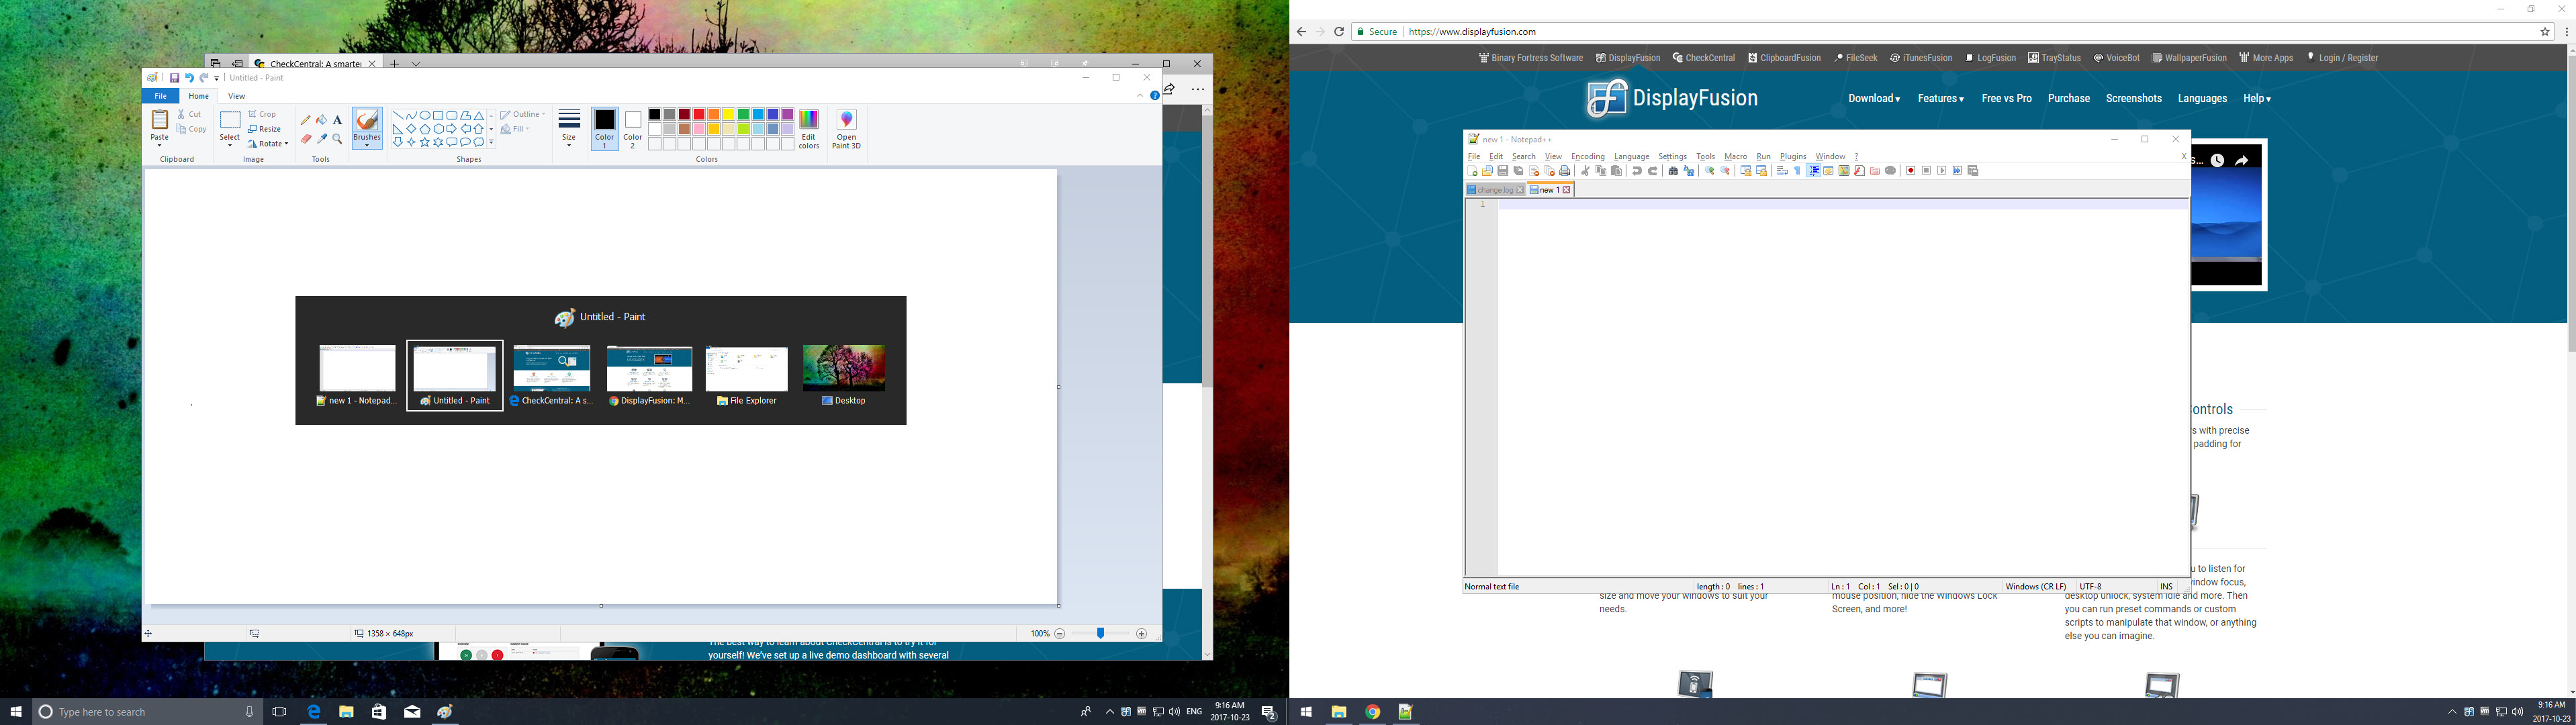 Alt+Tab Handler: Show on Current Monitor